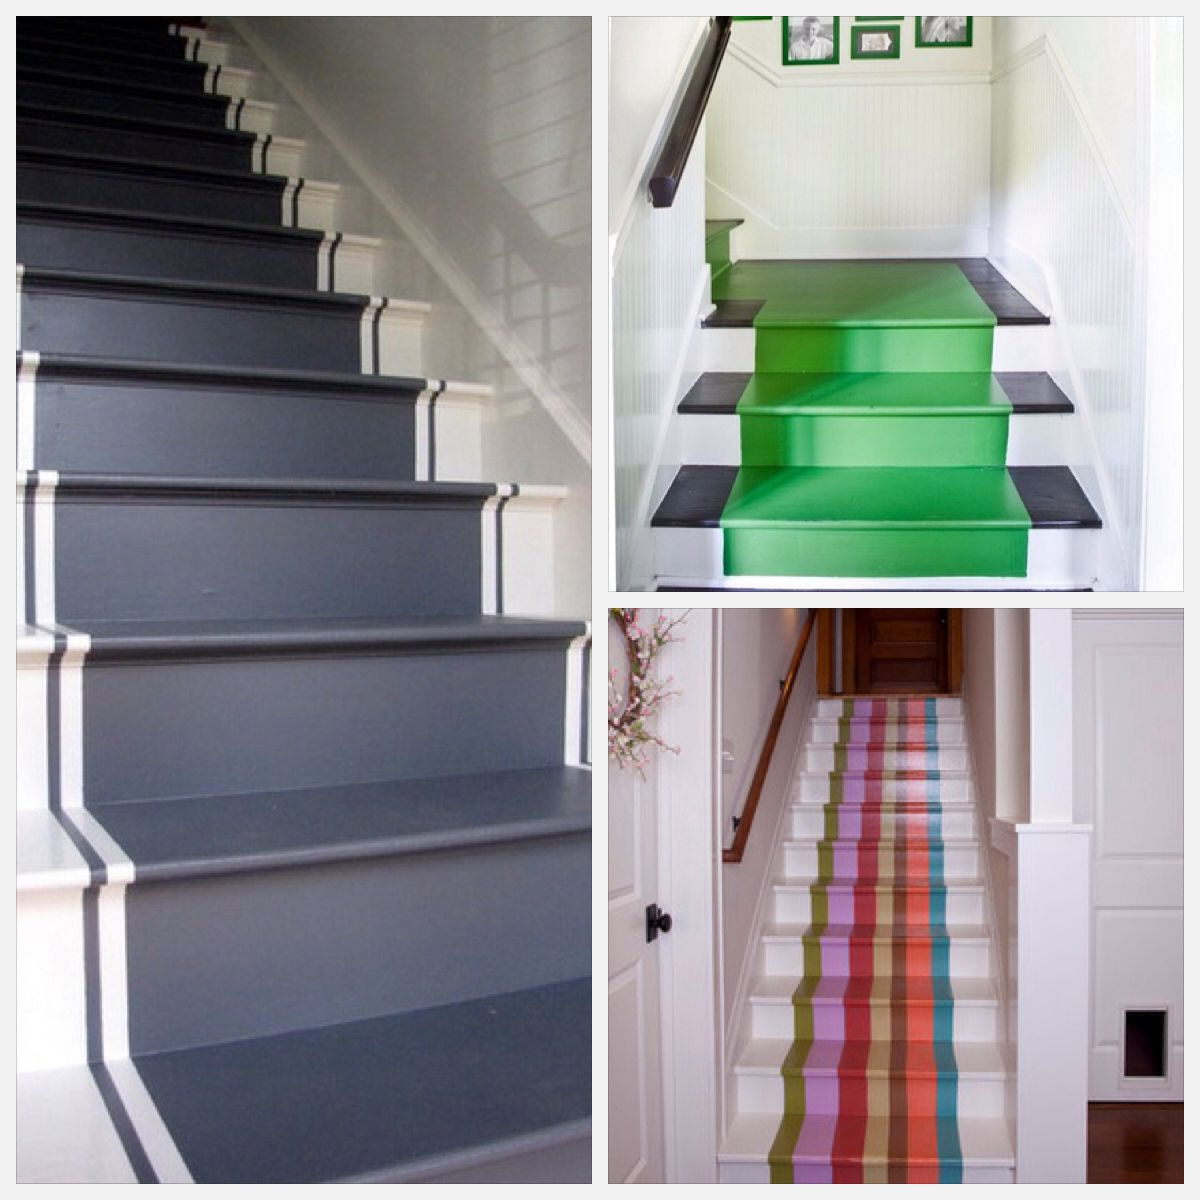 Painted Basement Stairs Ideas: Painted Stairs, Home, Stairs